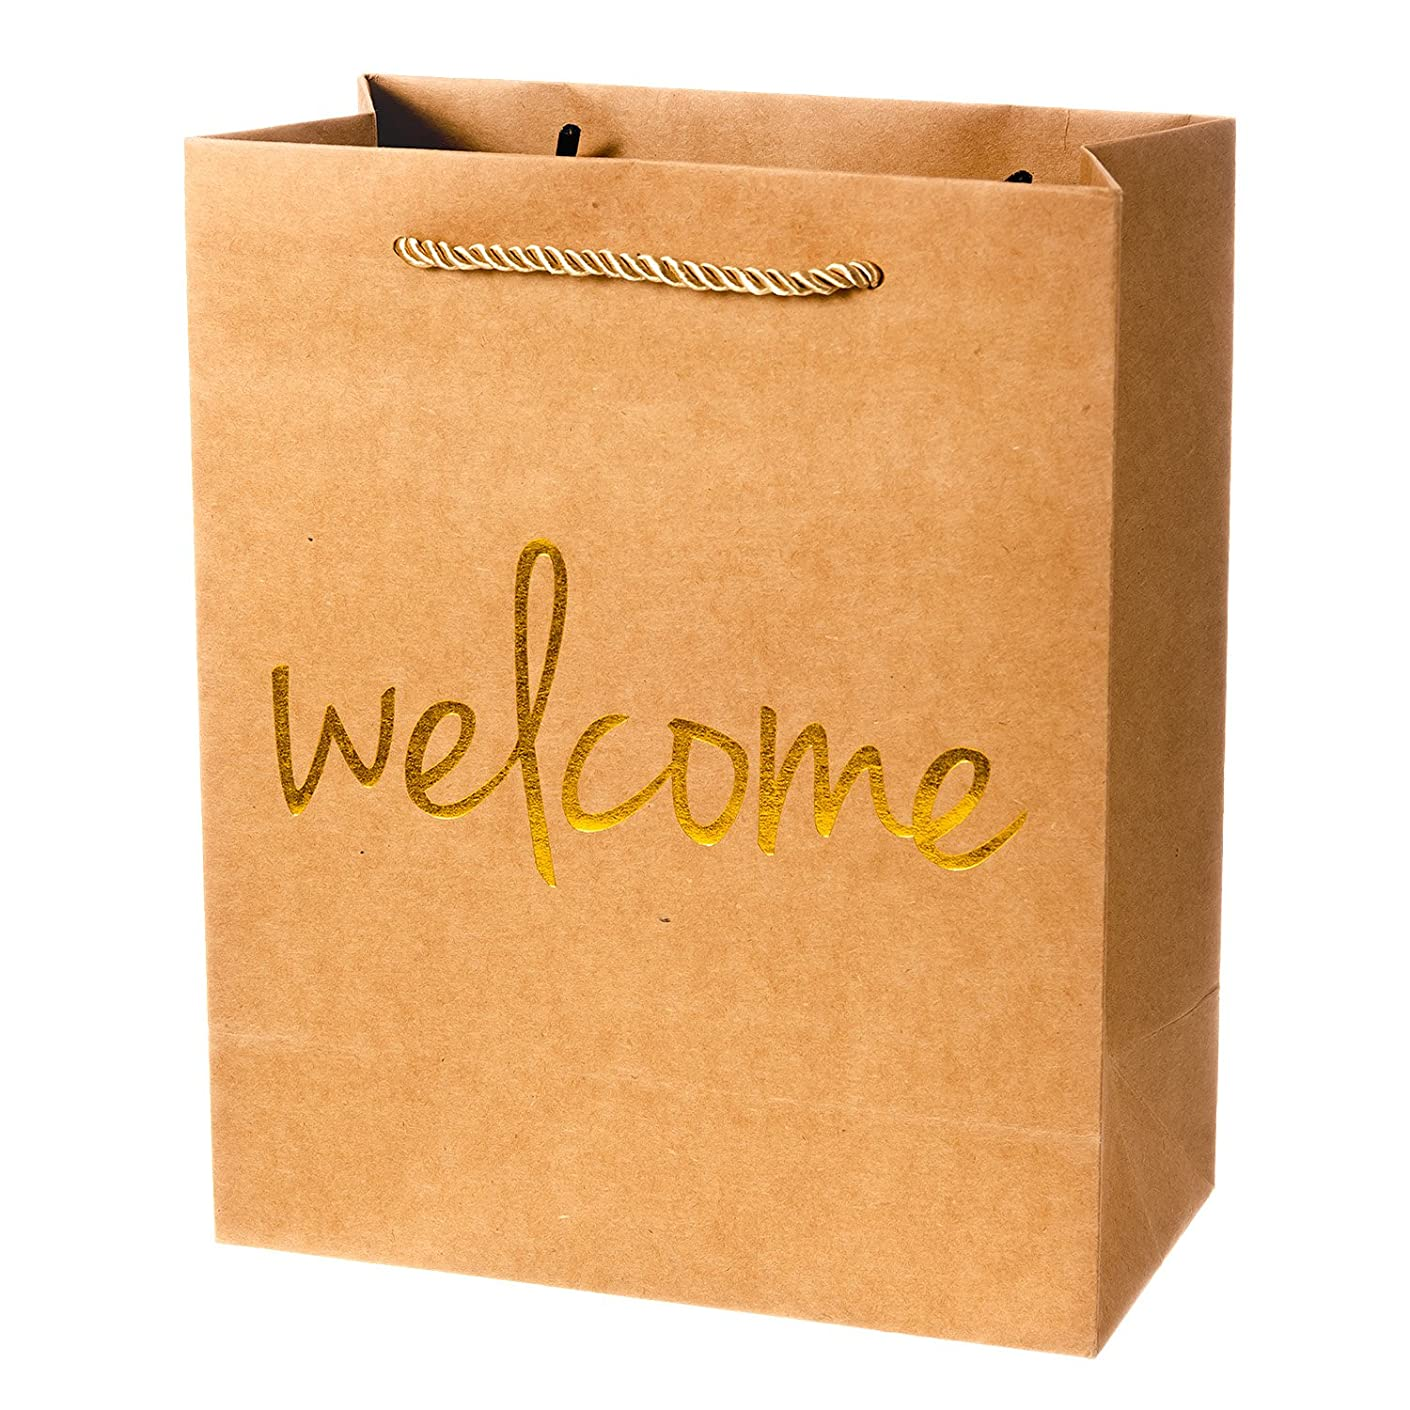 Crisky Welcome Gift Bags 25 Pcs Wedding Welcome Bags for Hotel Guests Shopping Bags Party Bags Gift Bags Retail Bags, 4x8x10 inch